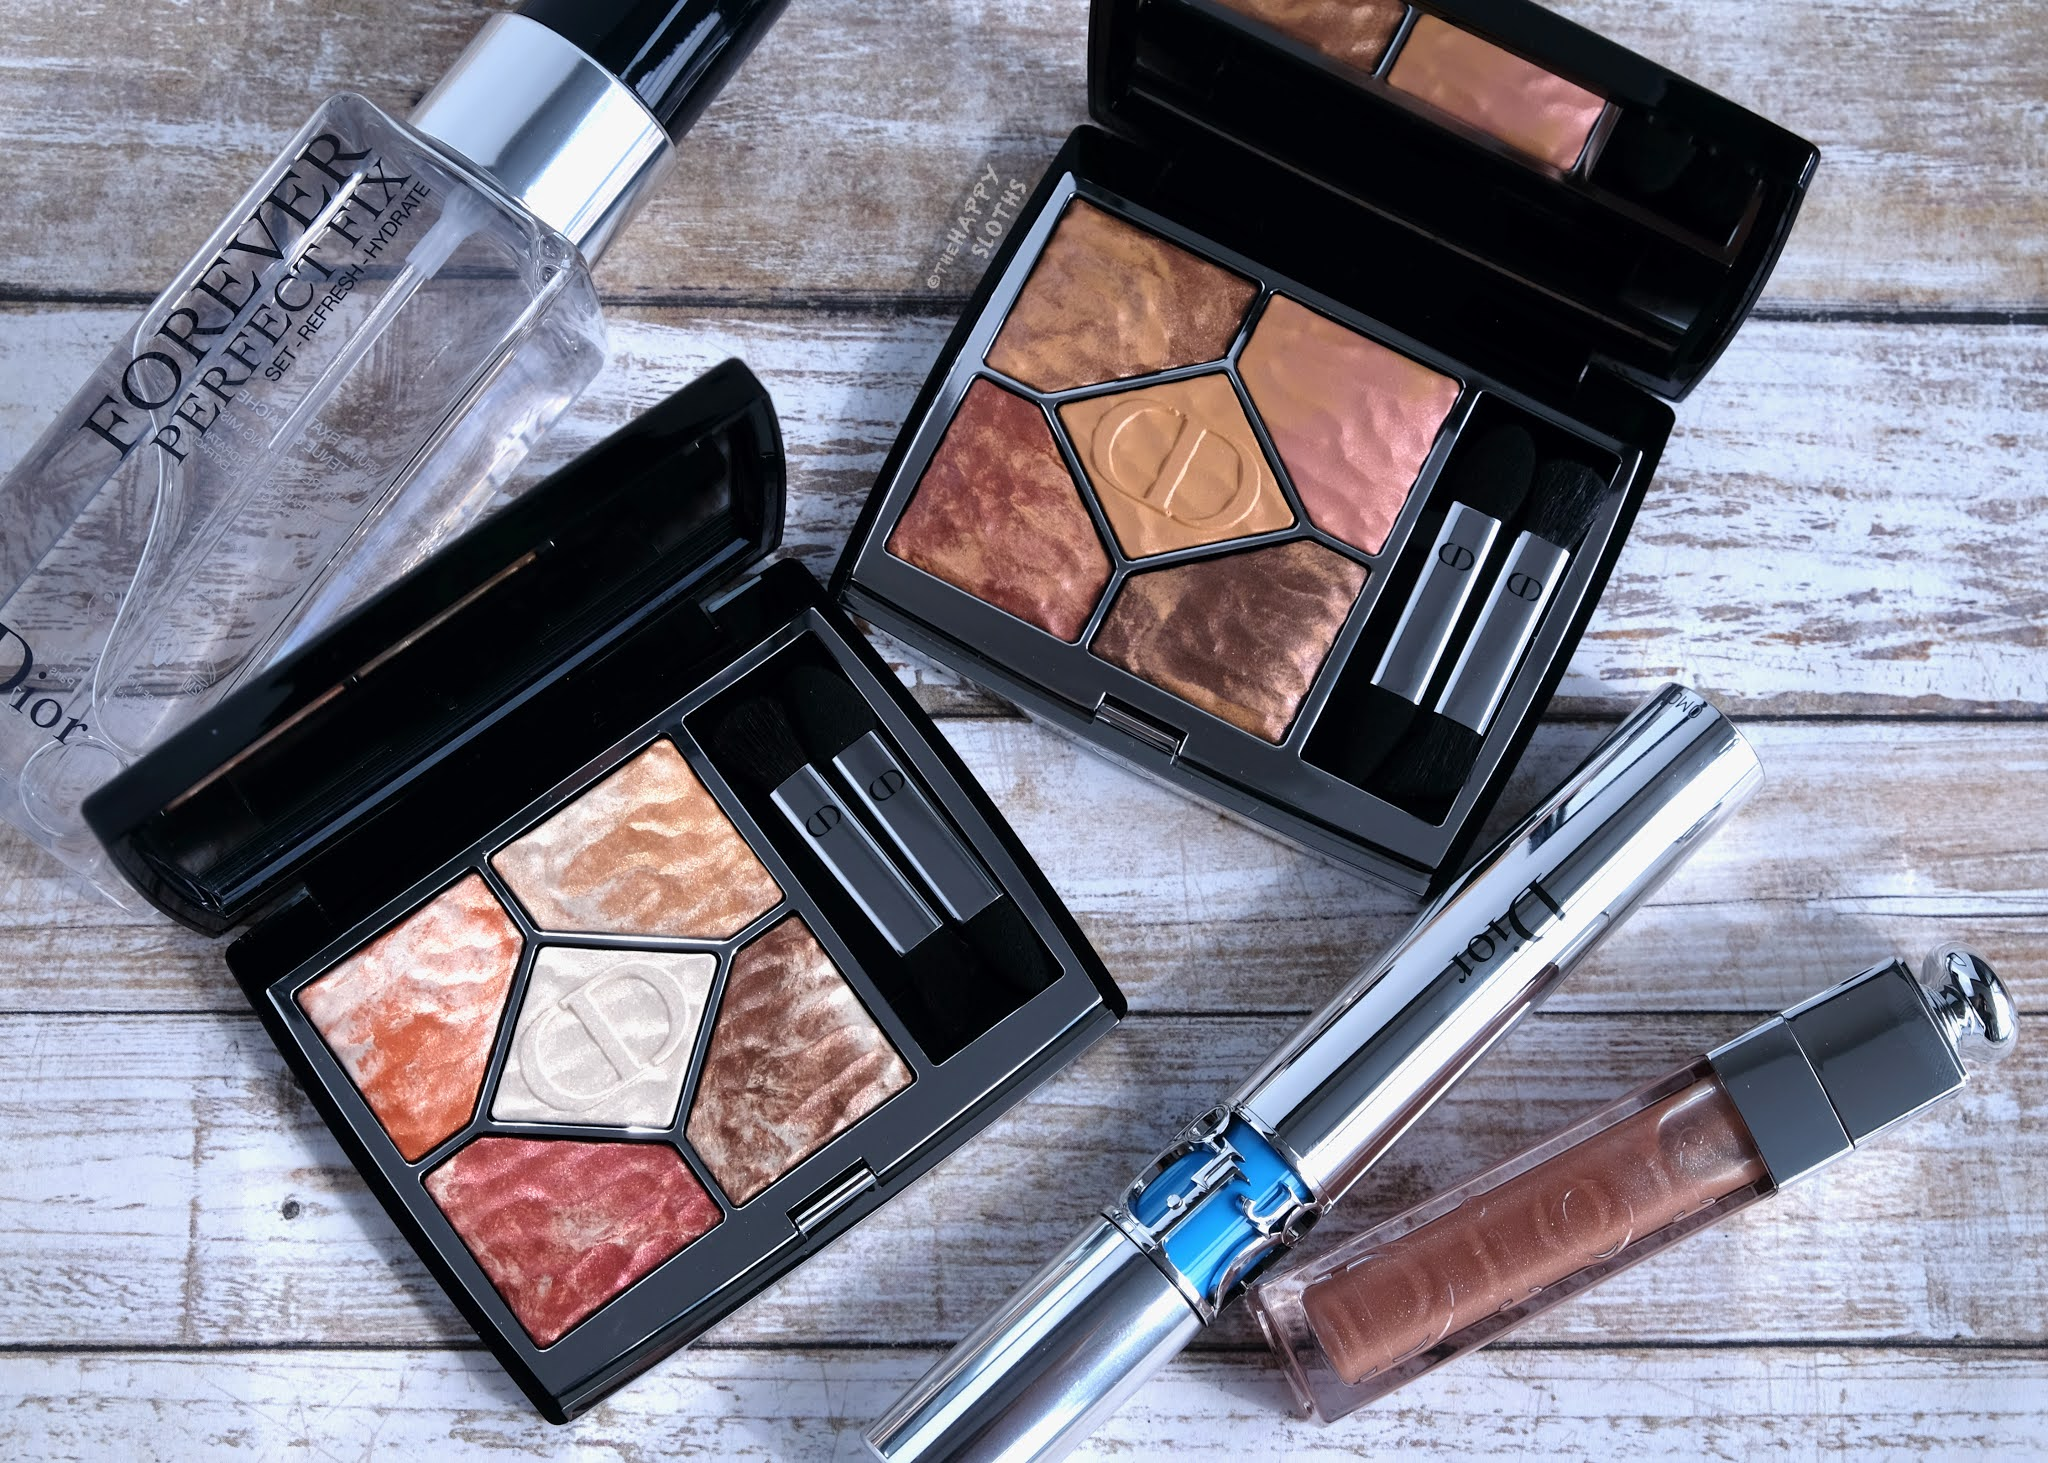 Dior | Summer 2021 Summer Dune Collection: Review and Swatches